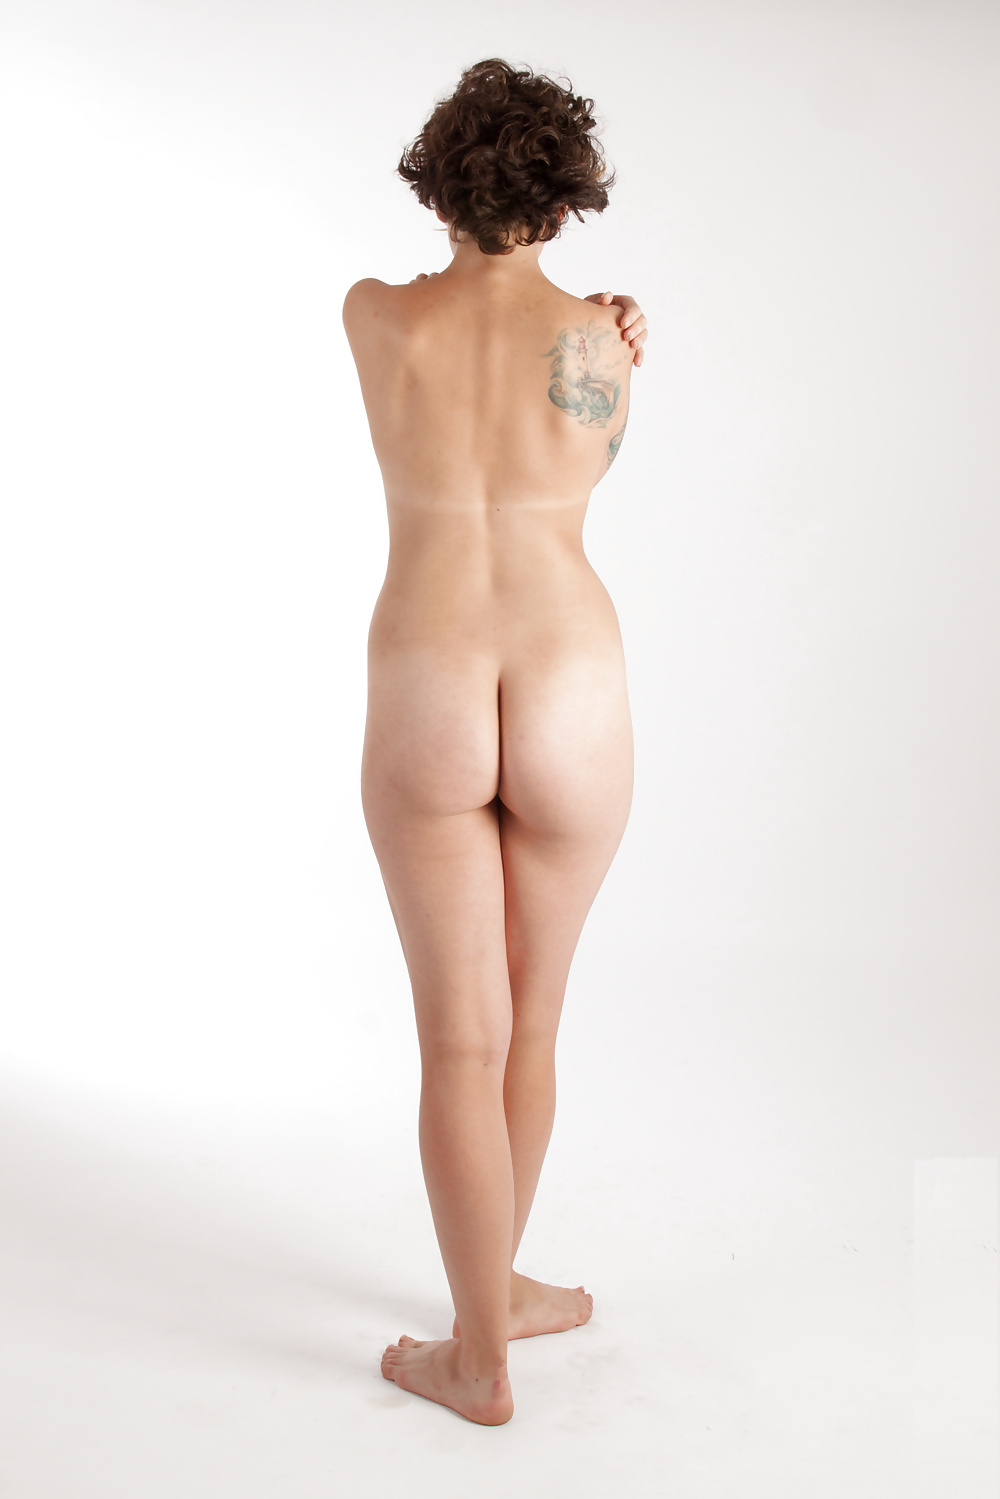 Sexy Naked Girl Standing Up